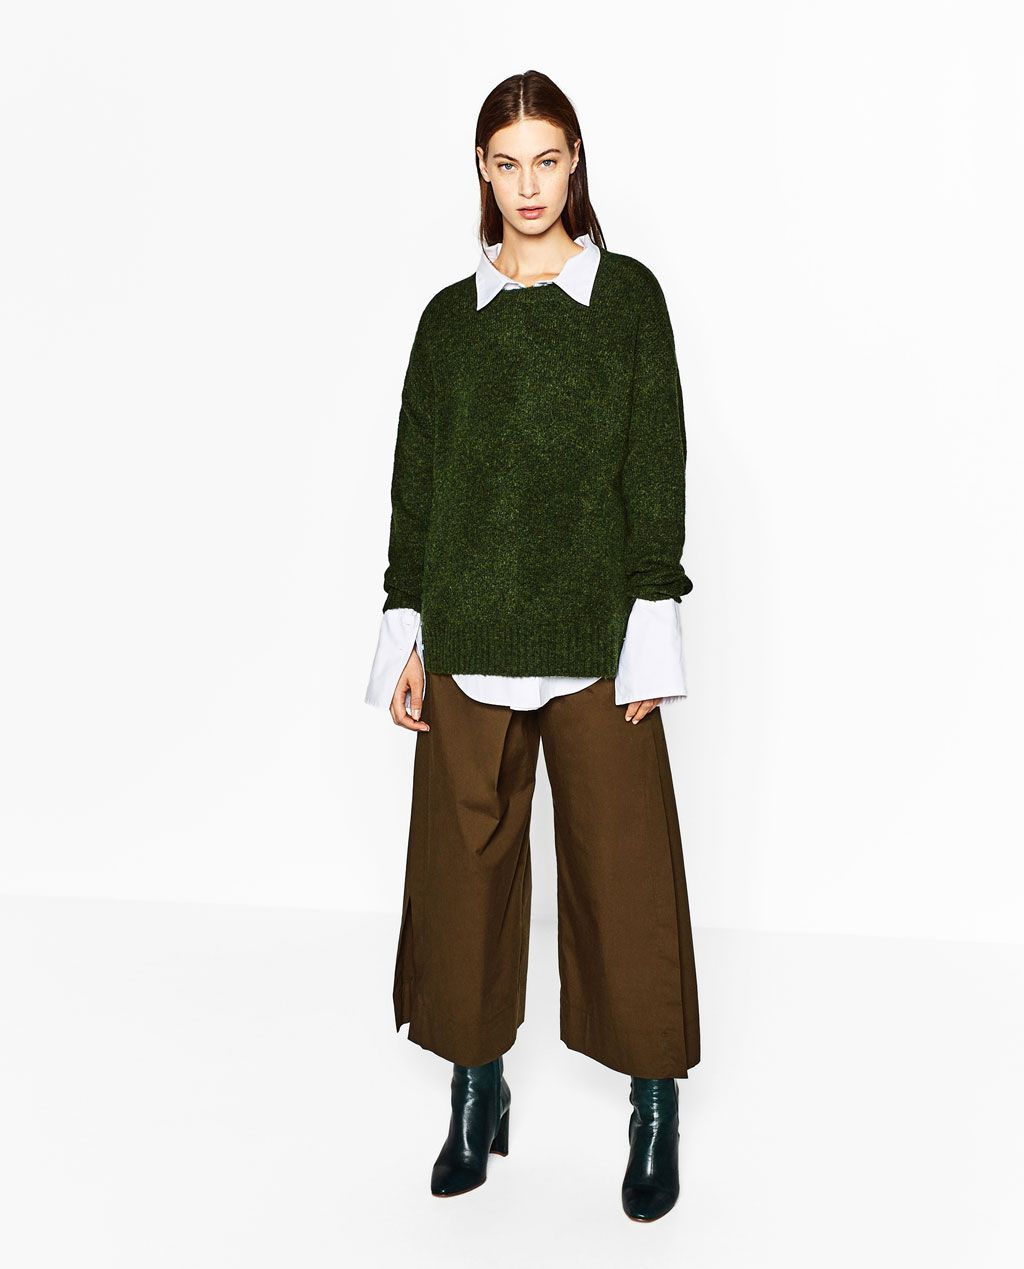 I love a good oversized sweater - and the color on this ones ...